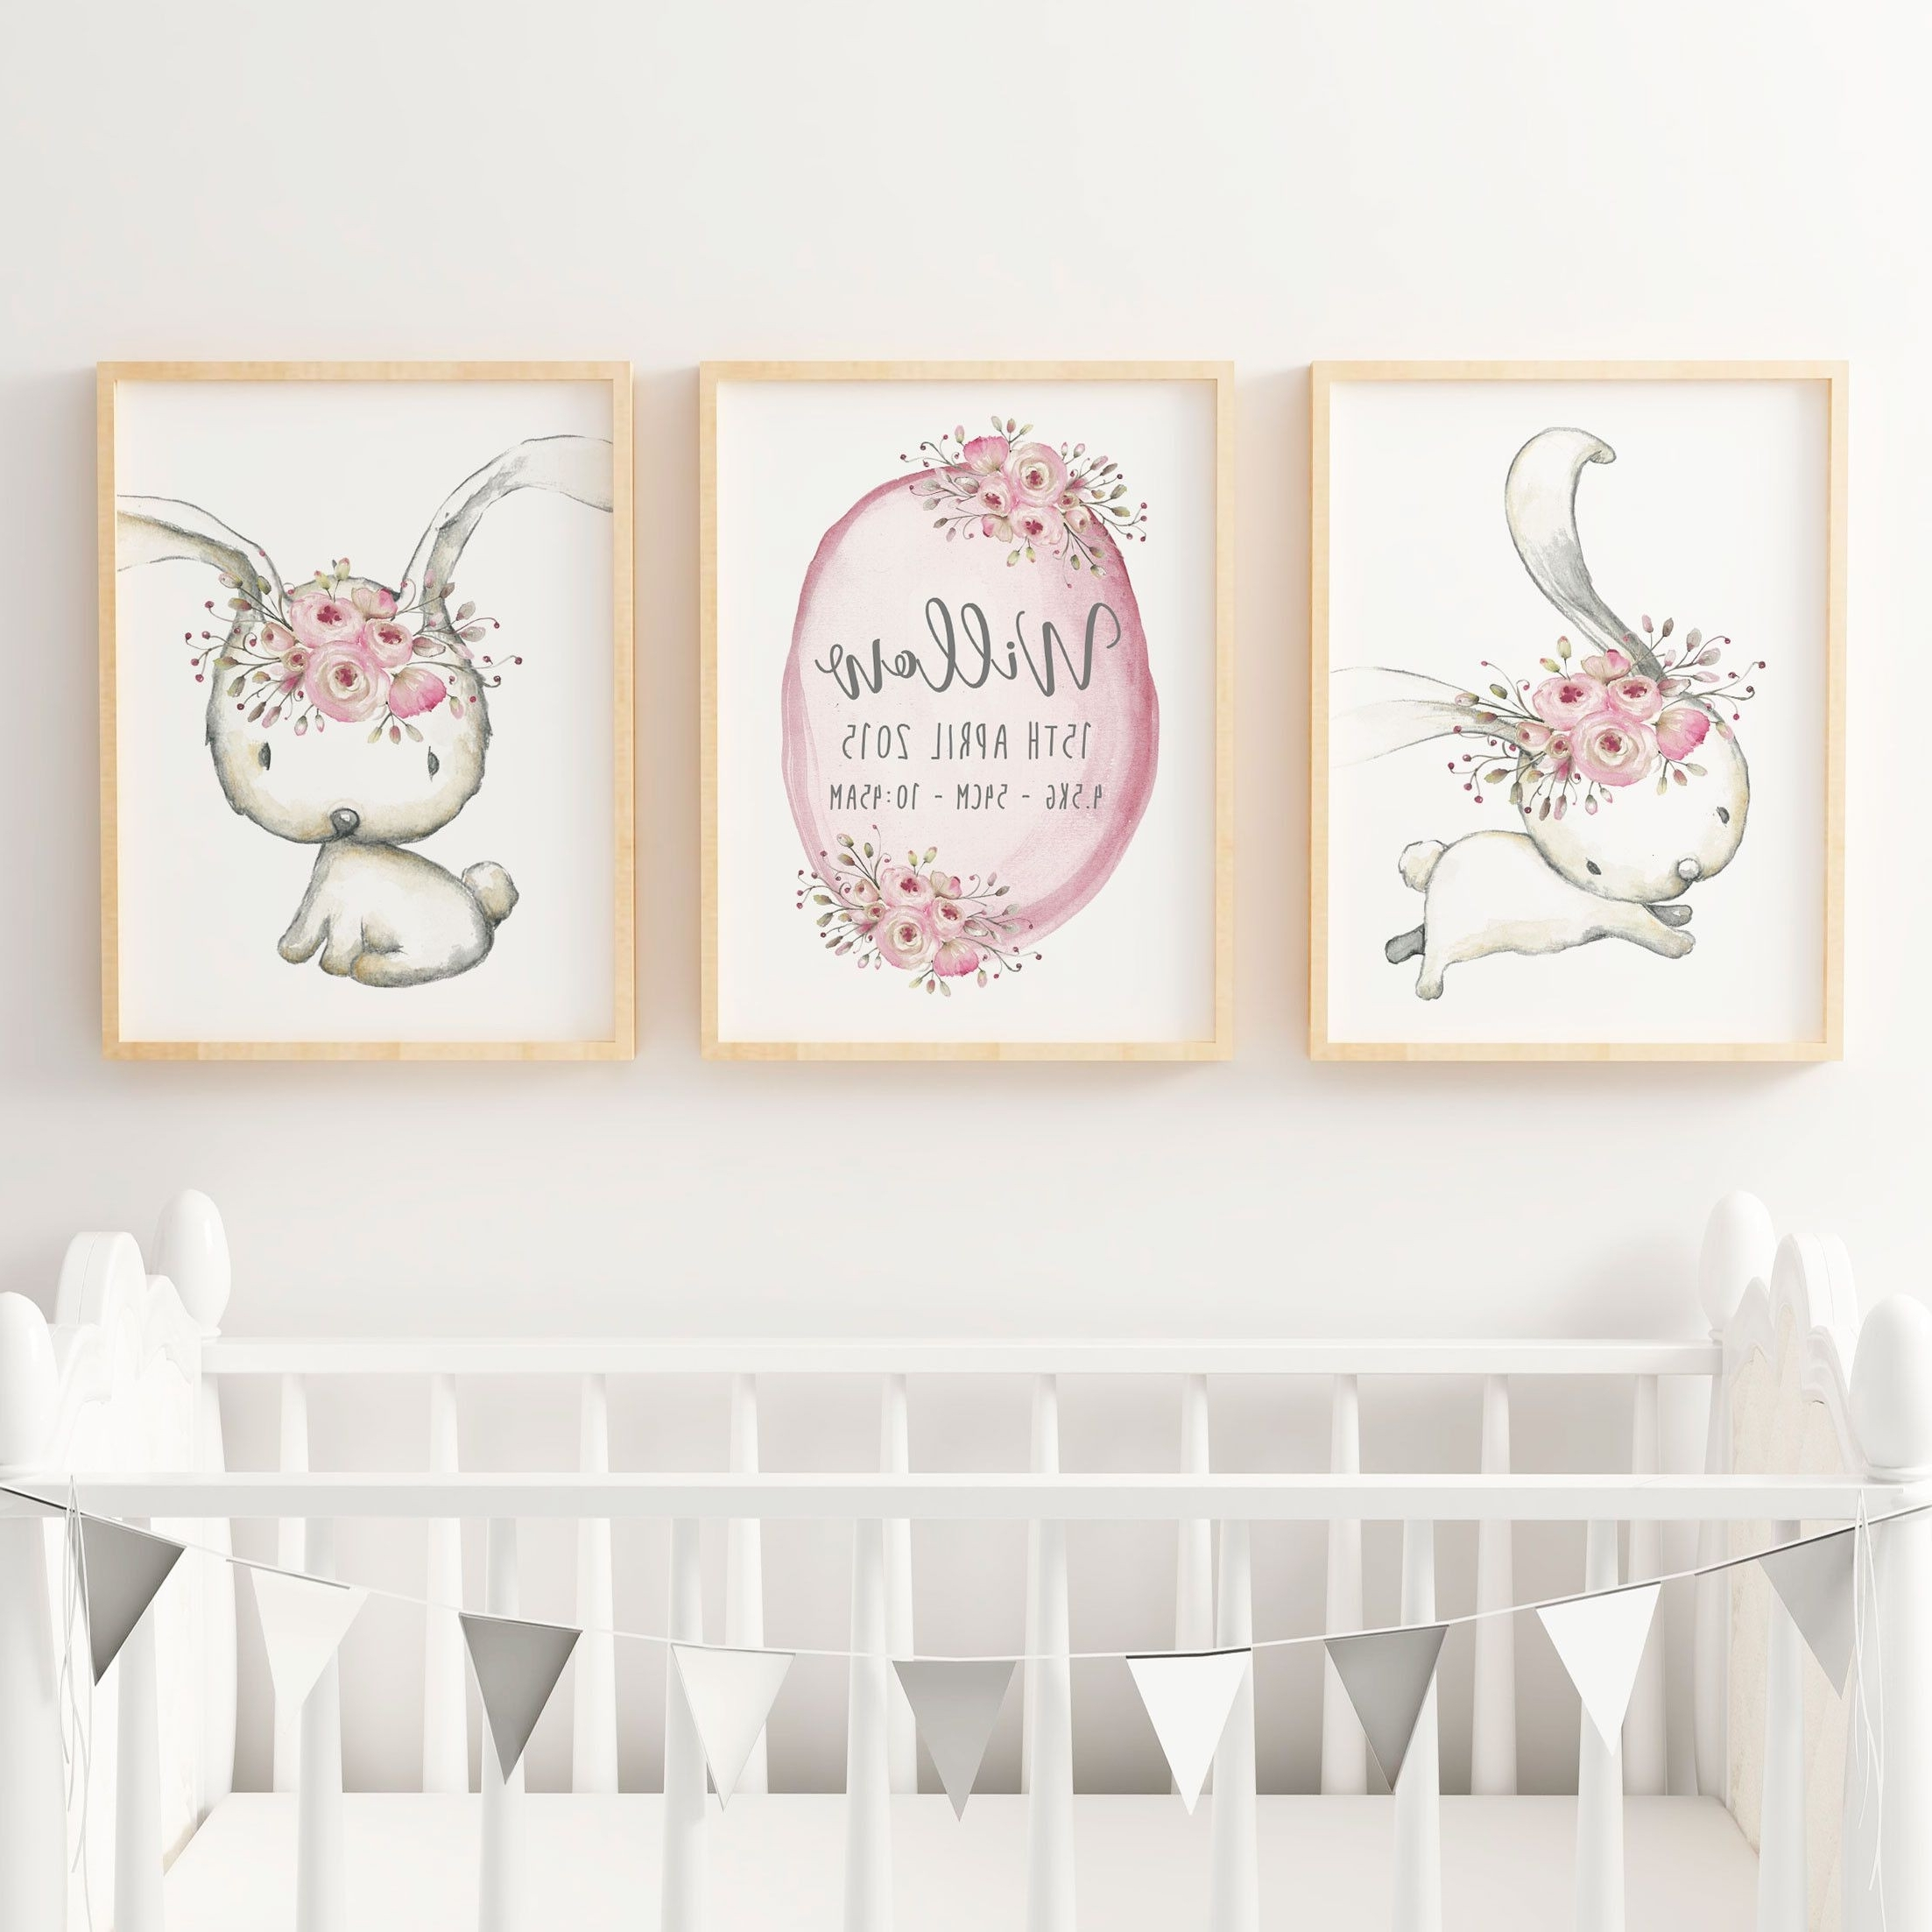 Bohemian Wall Art Intended For Current Baby Girls Woodland Boho Bunny Nursery Or Bedroom Wall Art Decor (View 6 of 20)